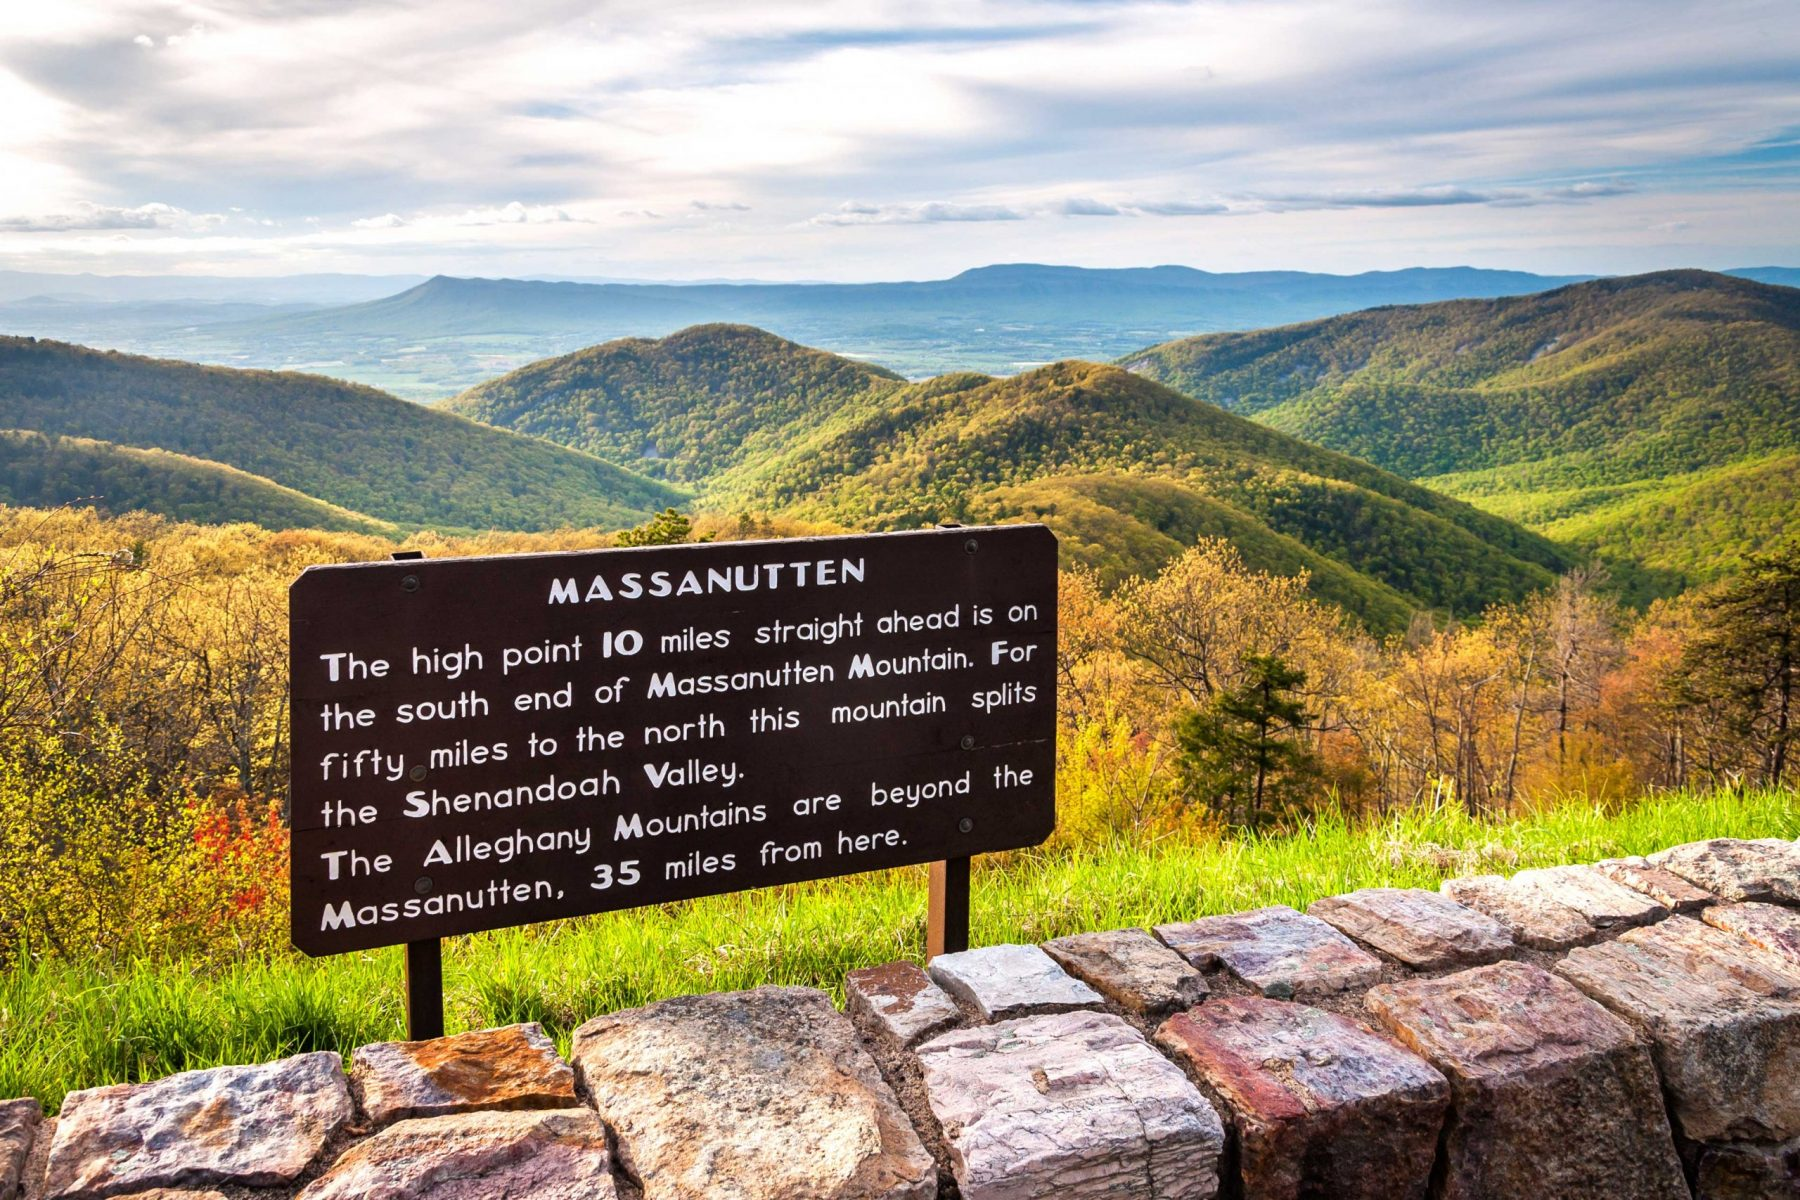 Information sign for mountains and park